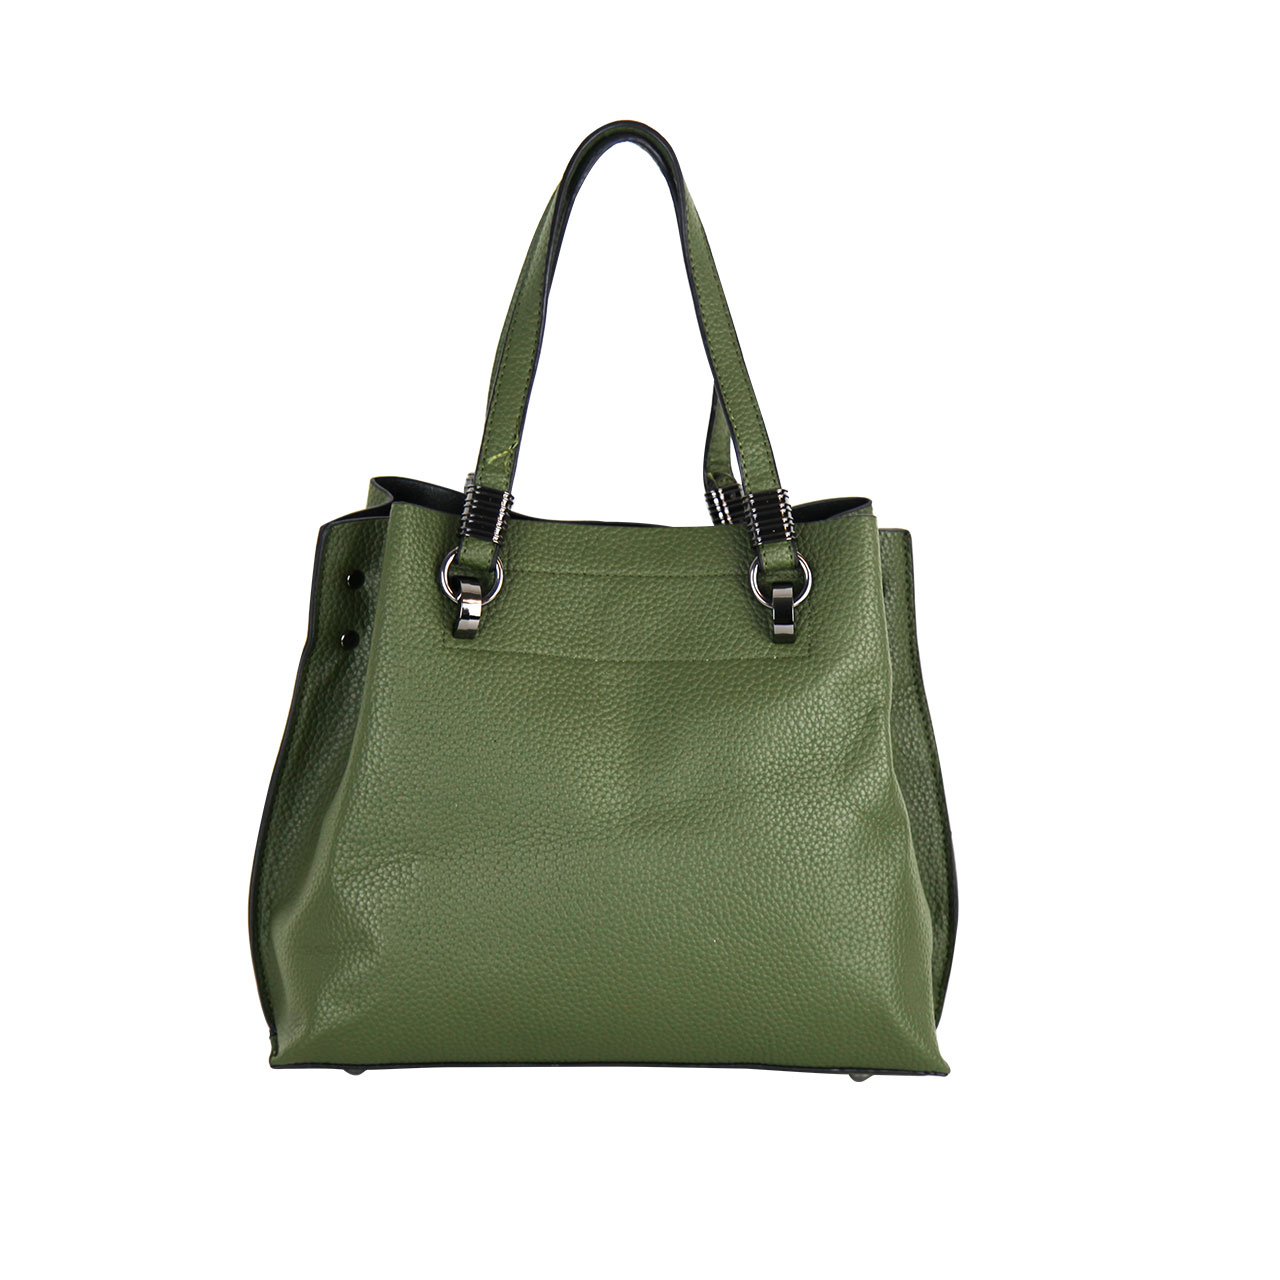 High Impact Classic Structured Leather Green Tote